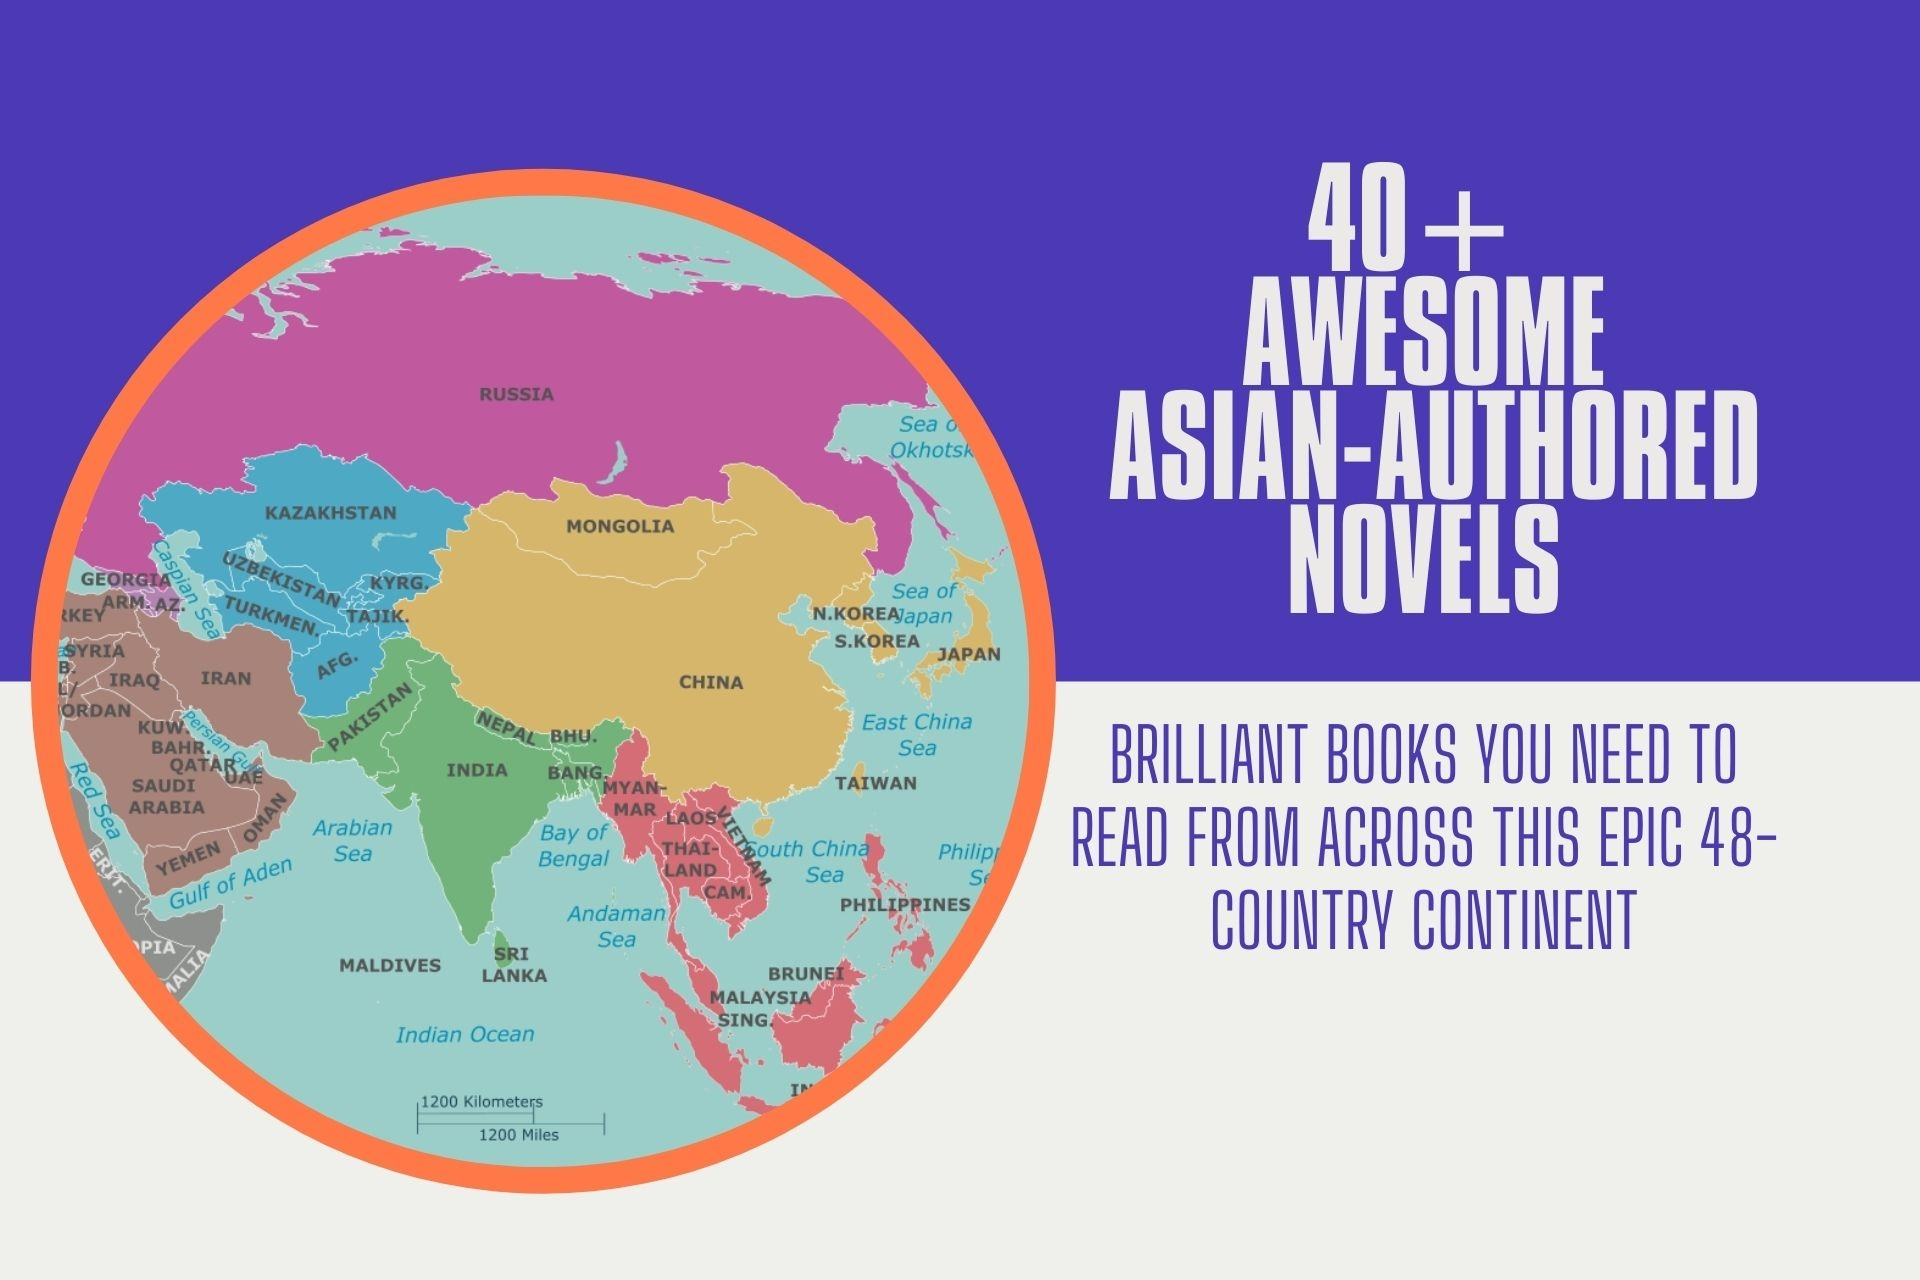 40+ Awesome Asian-authored Novels - Brilliant Books You Need to Read from Across This Epic 48-country Continent